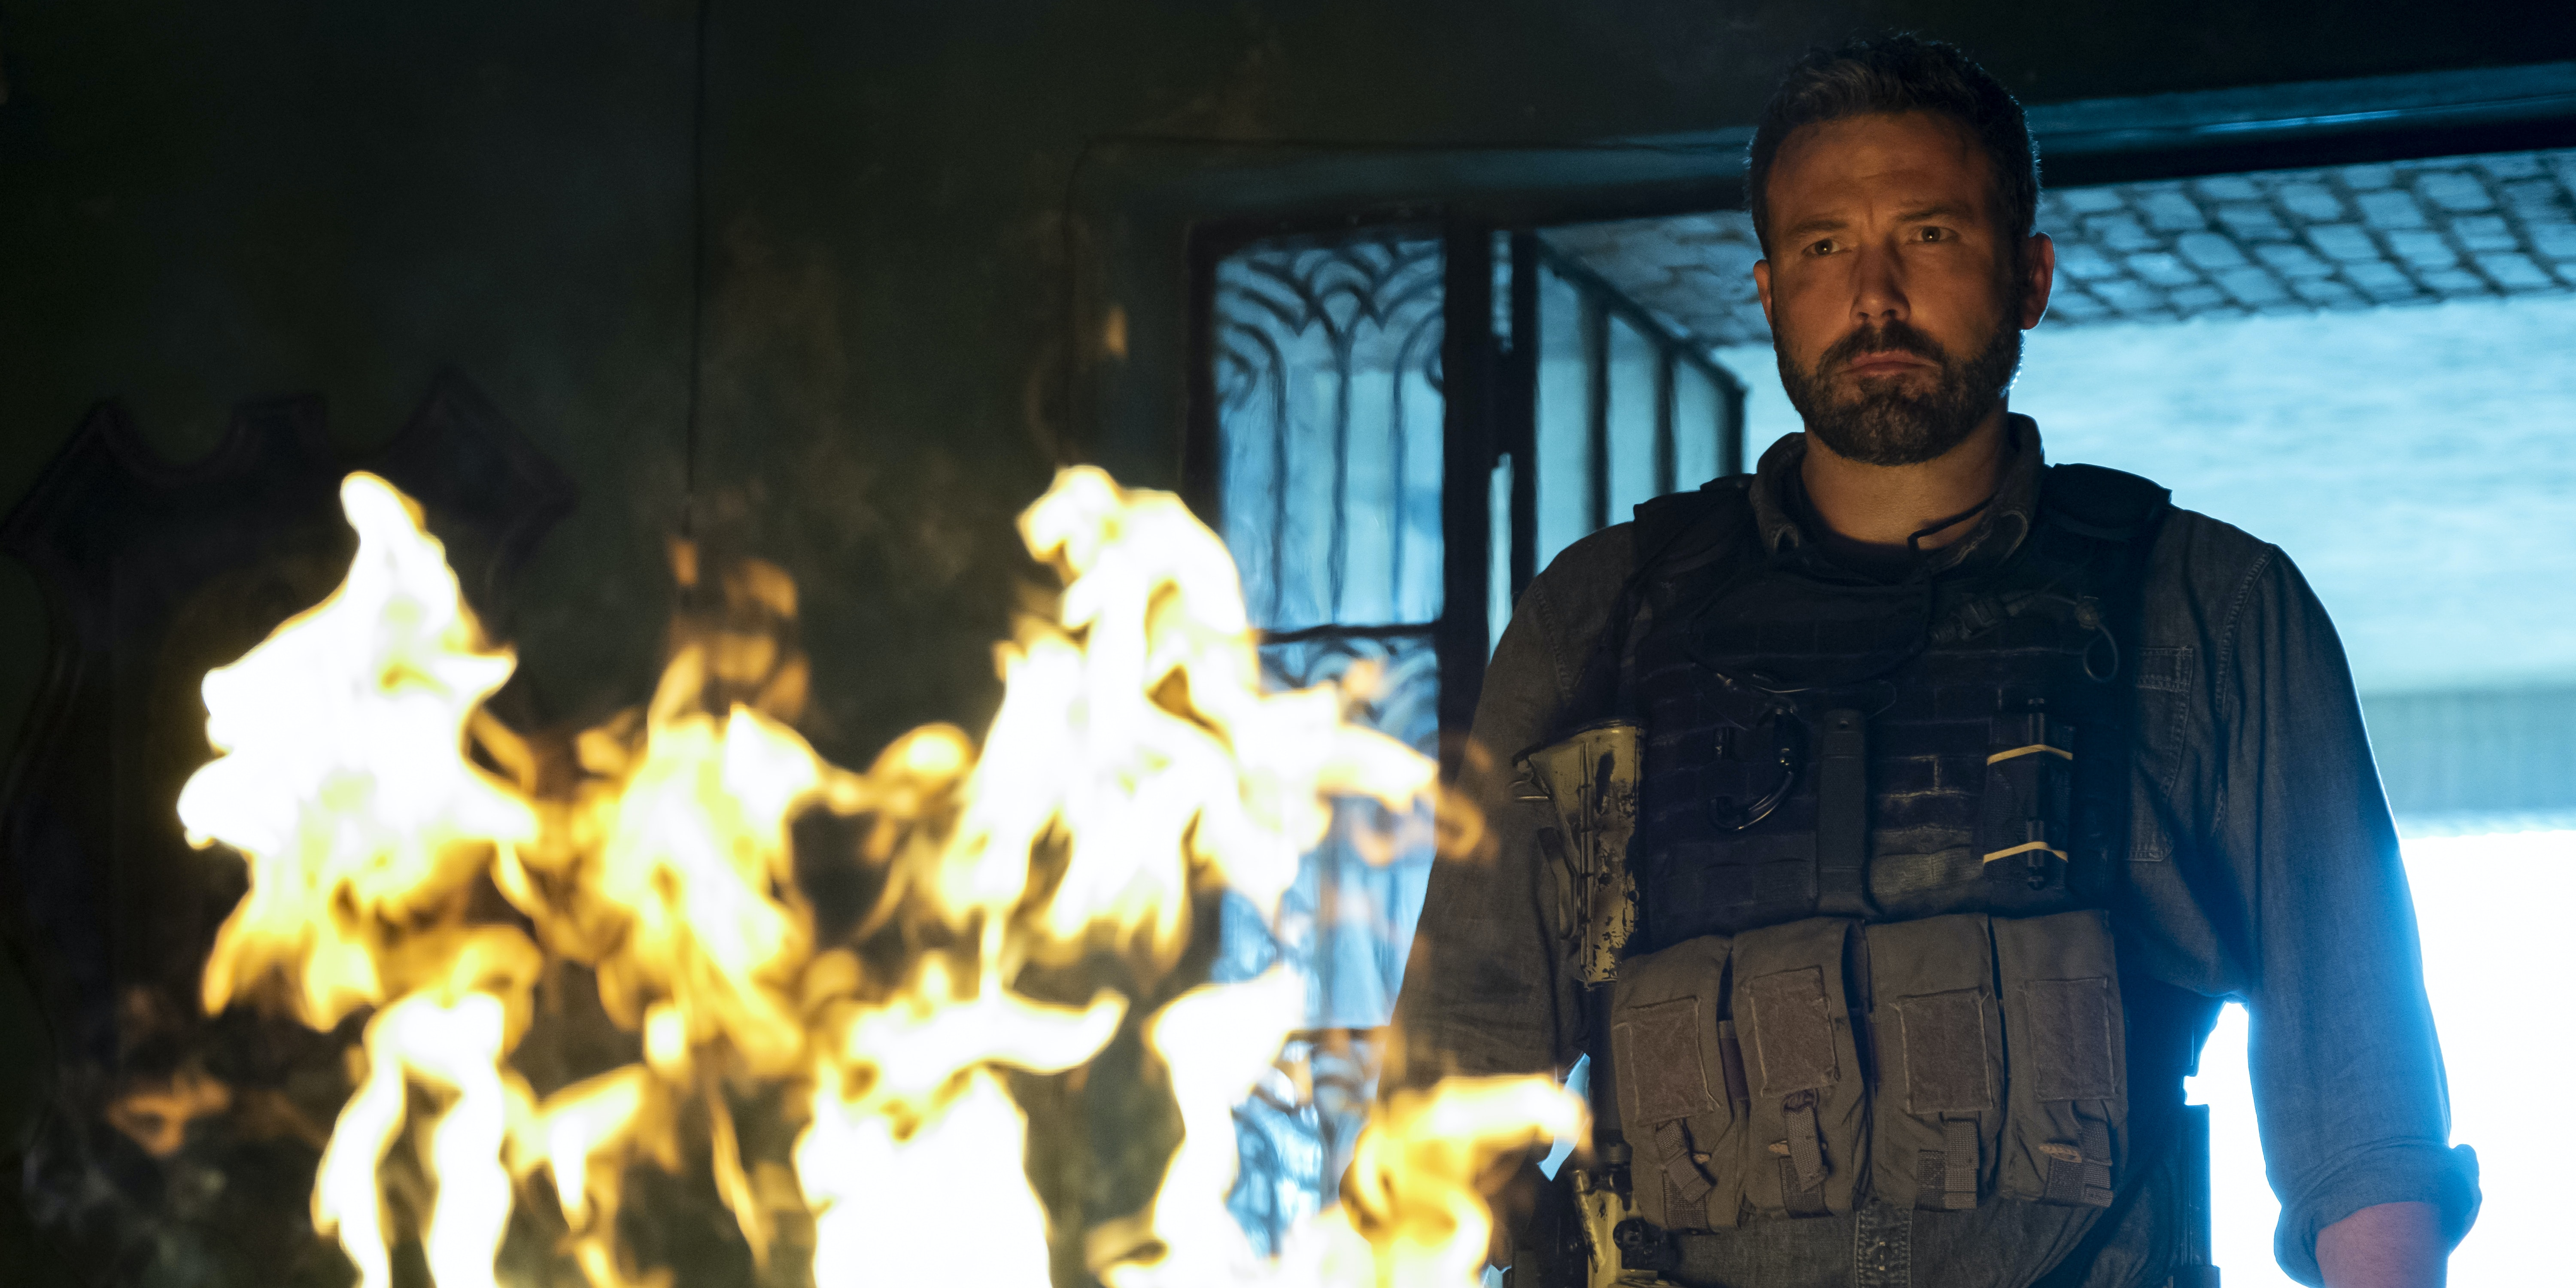 'Triple Frontier': Why the Actors Fired Real Guns With Live Ammo